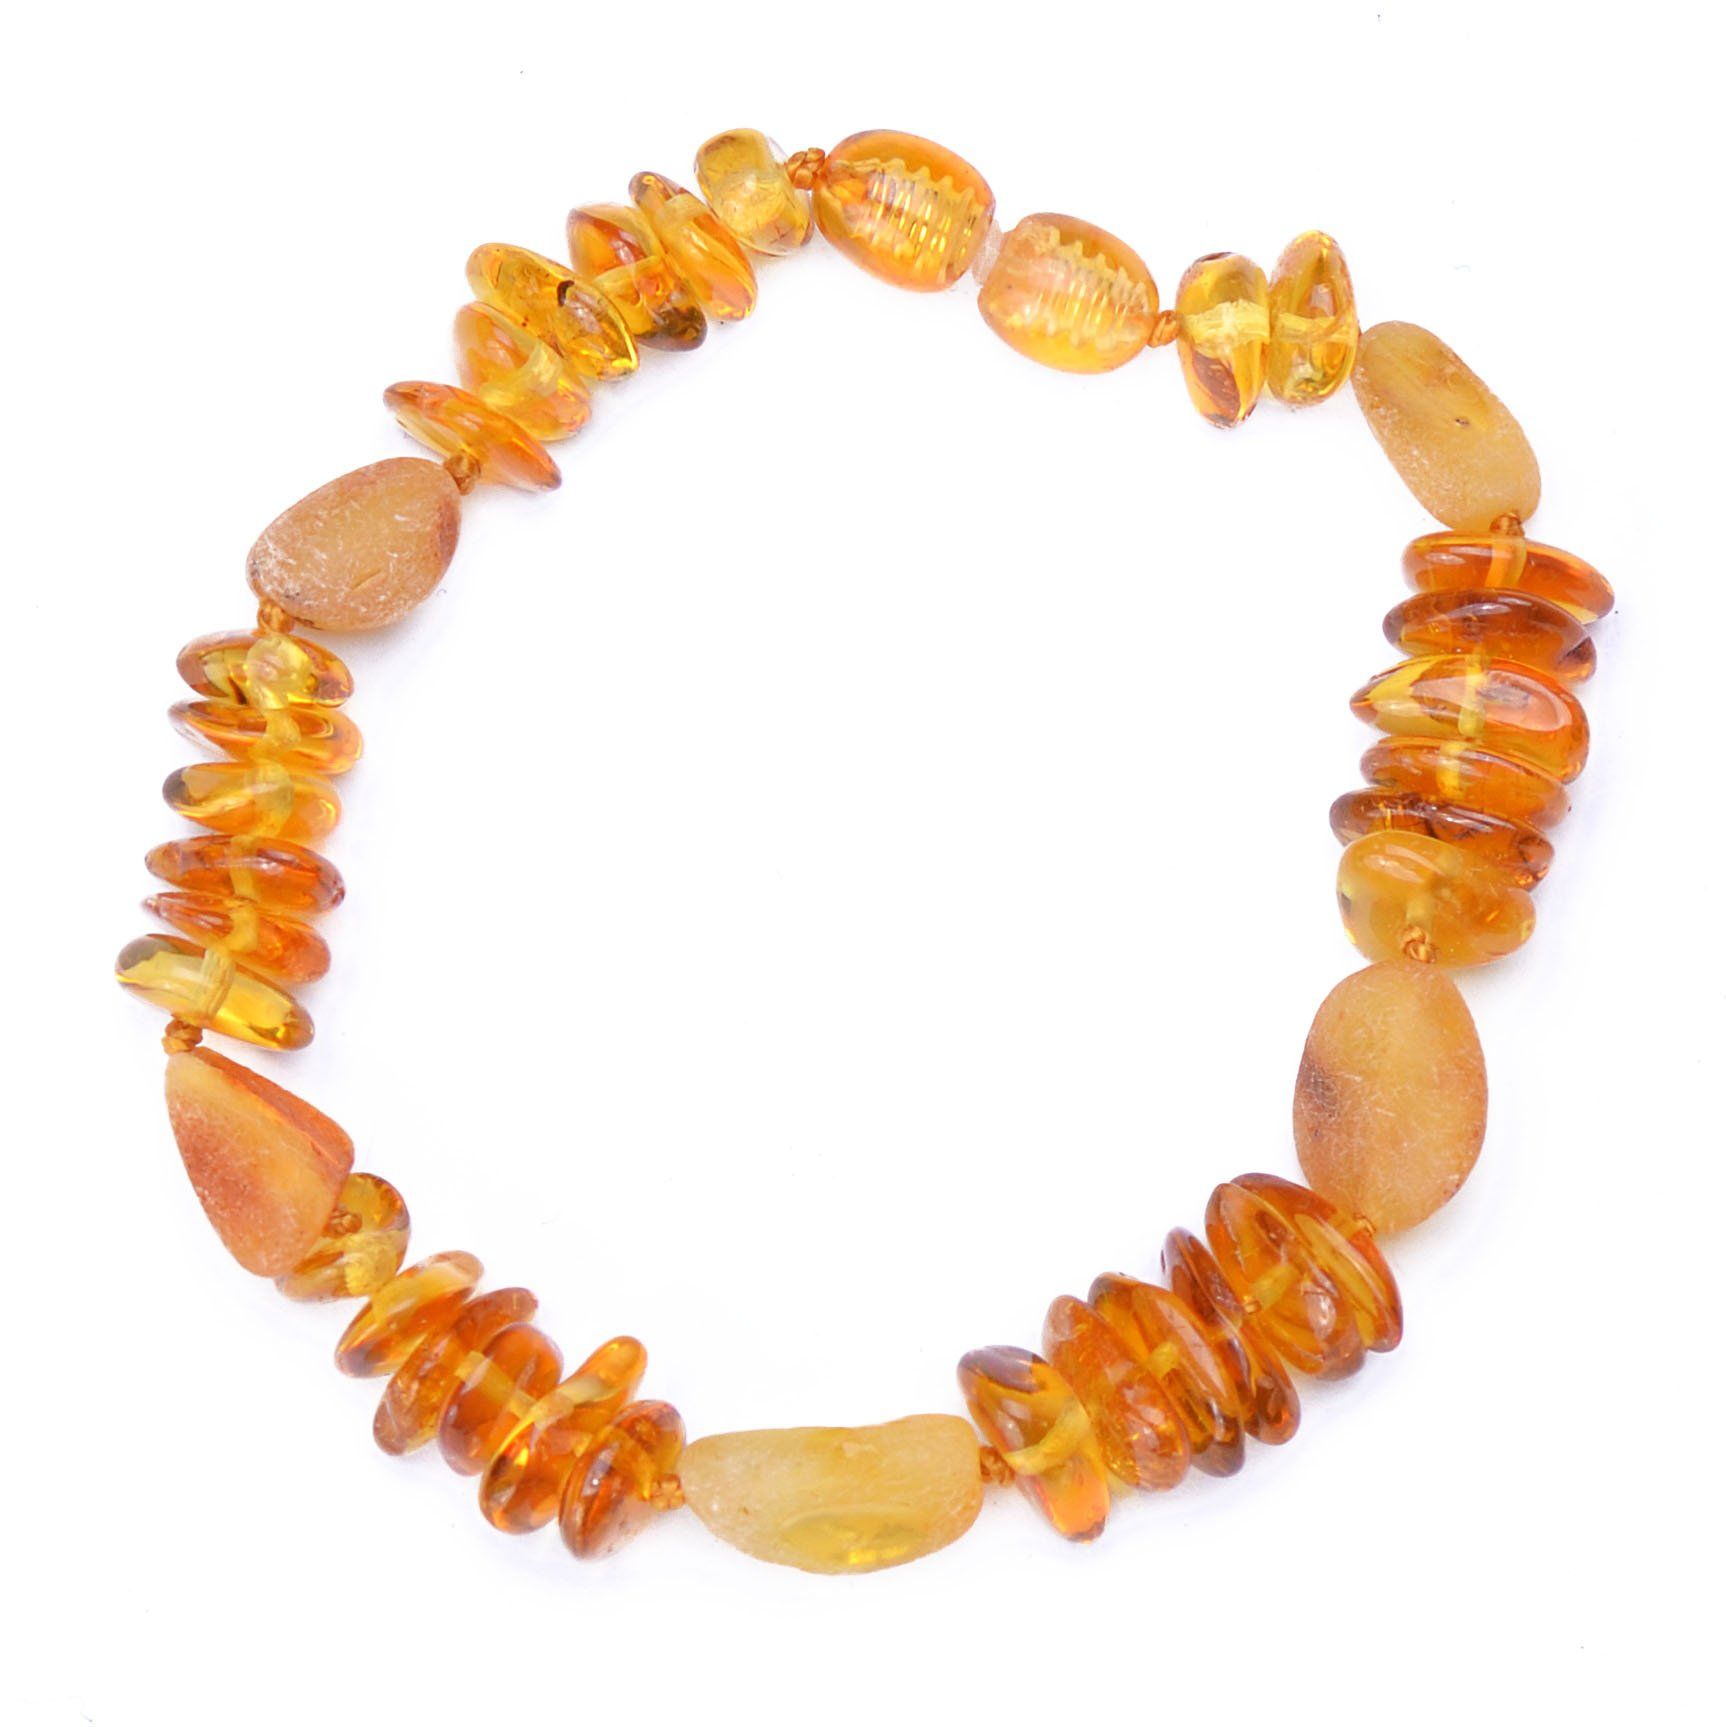 Polished Baltic Amber Bracelet for Adult with A Plastic Screw - Choose Your Color and Choose Your Size! - 3 Sizes and 6 Different Colors - Genuine Baltic Amber (7 Inches, Mixed6) by Genuine Amber